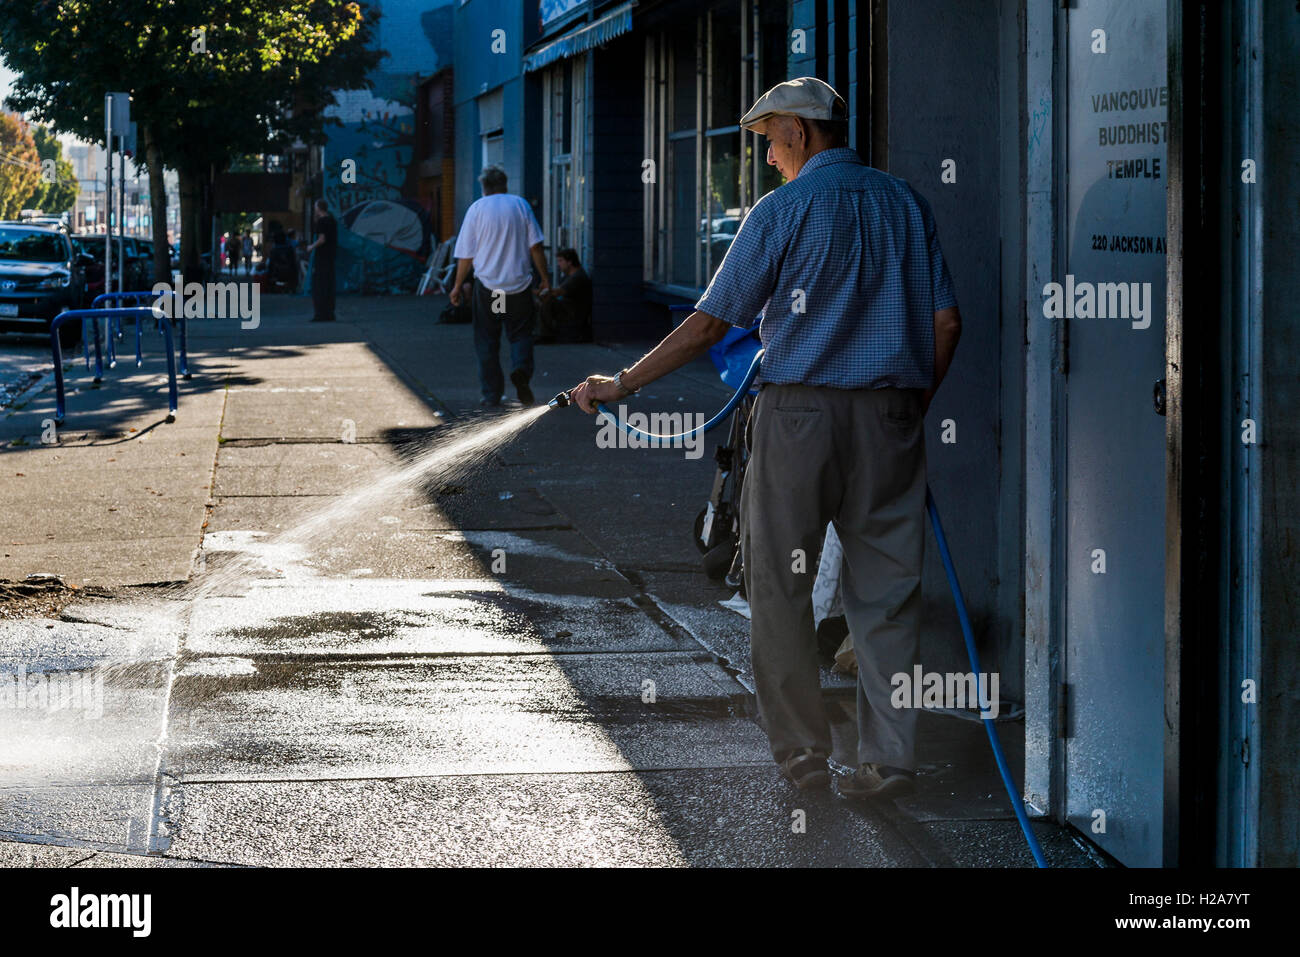 Man cleaning sidewalk with hose, Downtown Eastside, Vancouver, British Columbia, Canada - Stock Image